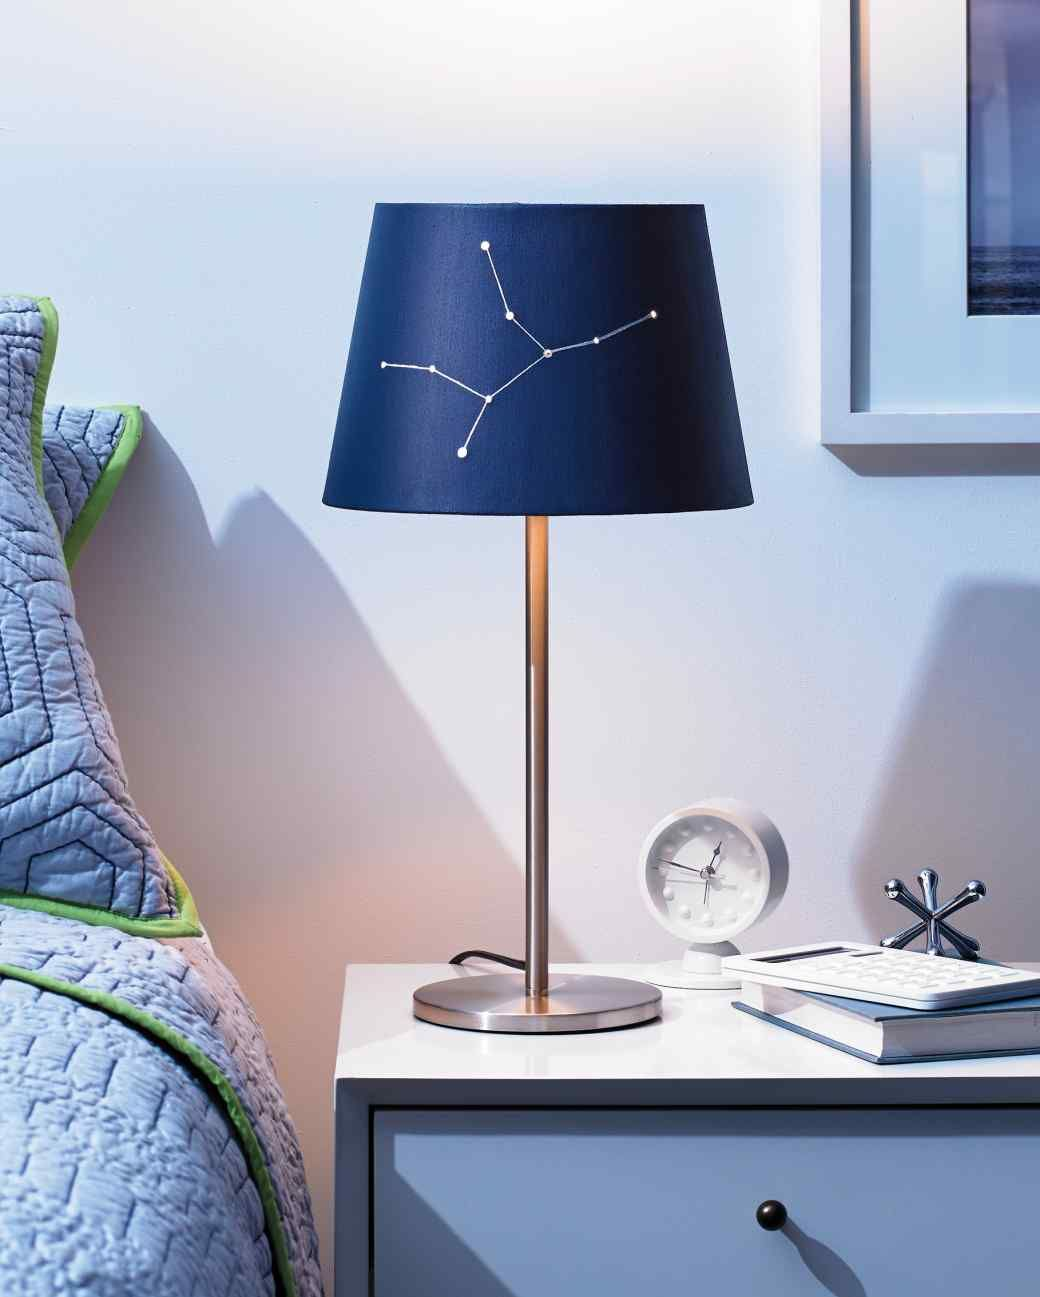 Starry nights diy constellation lampshade stargazer stargazers or anyone looking to give her room lighting a dreamier dimension aloadofball Gallery